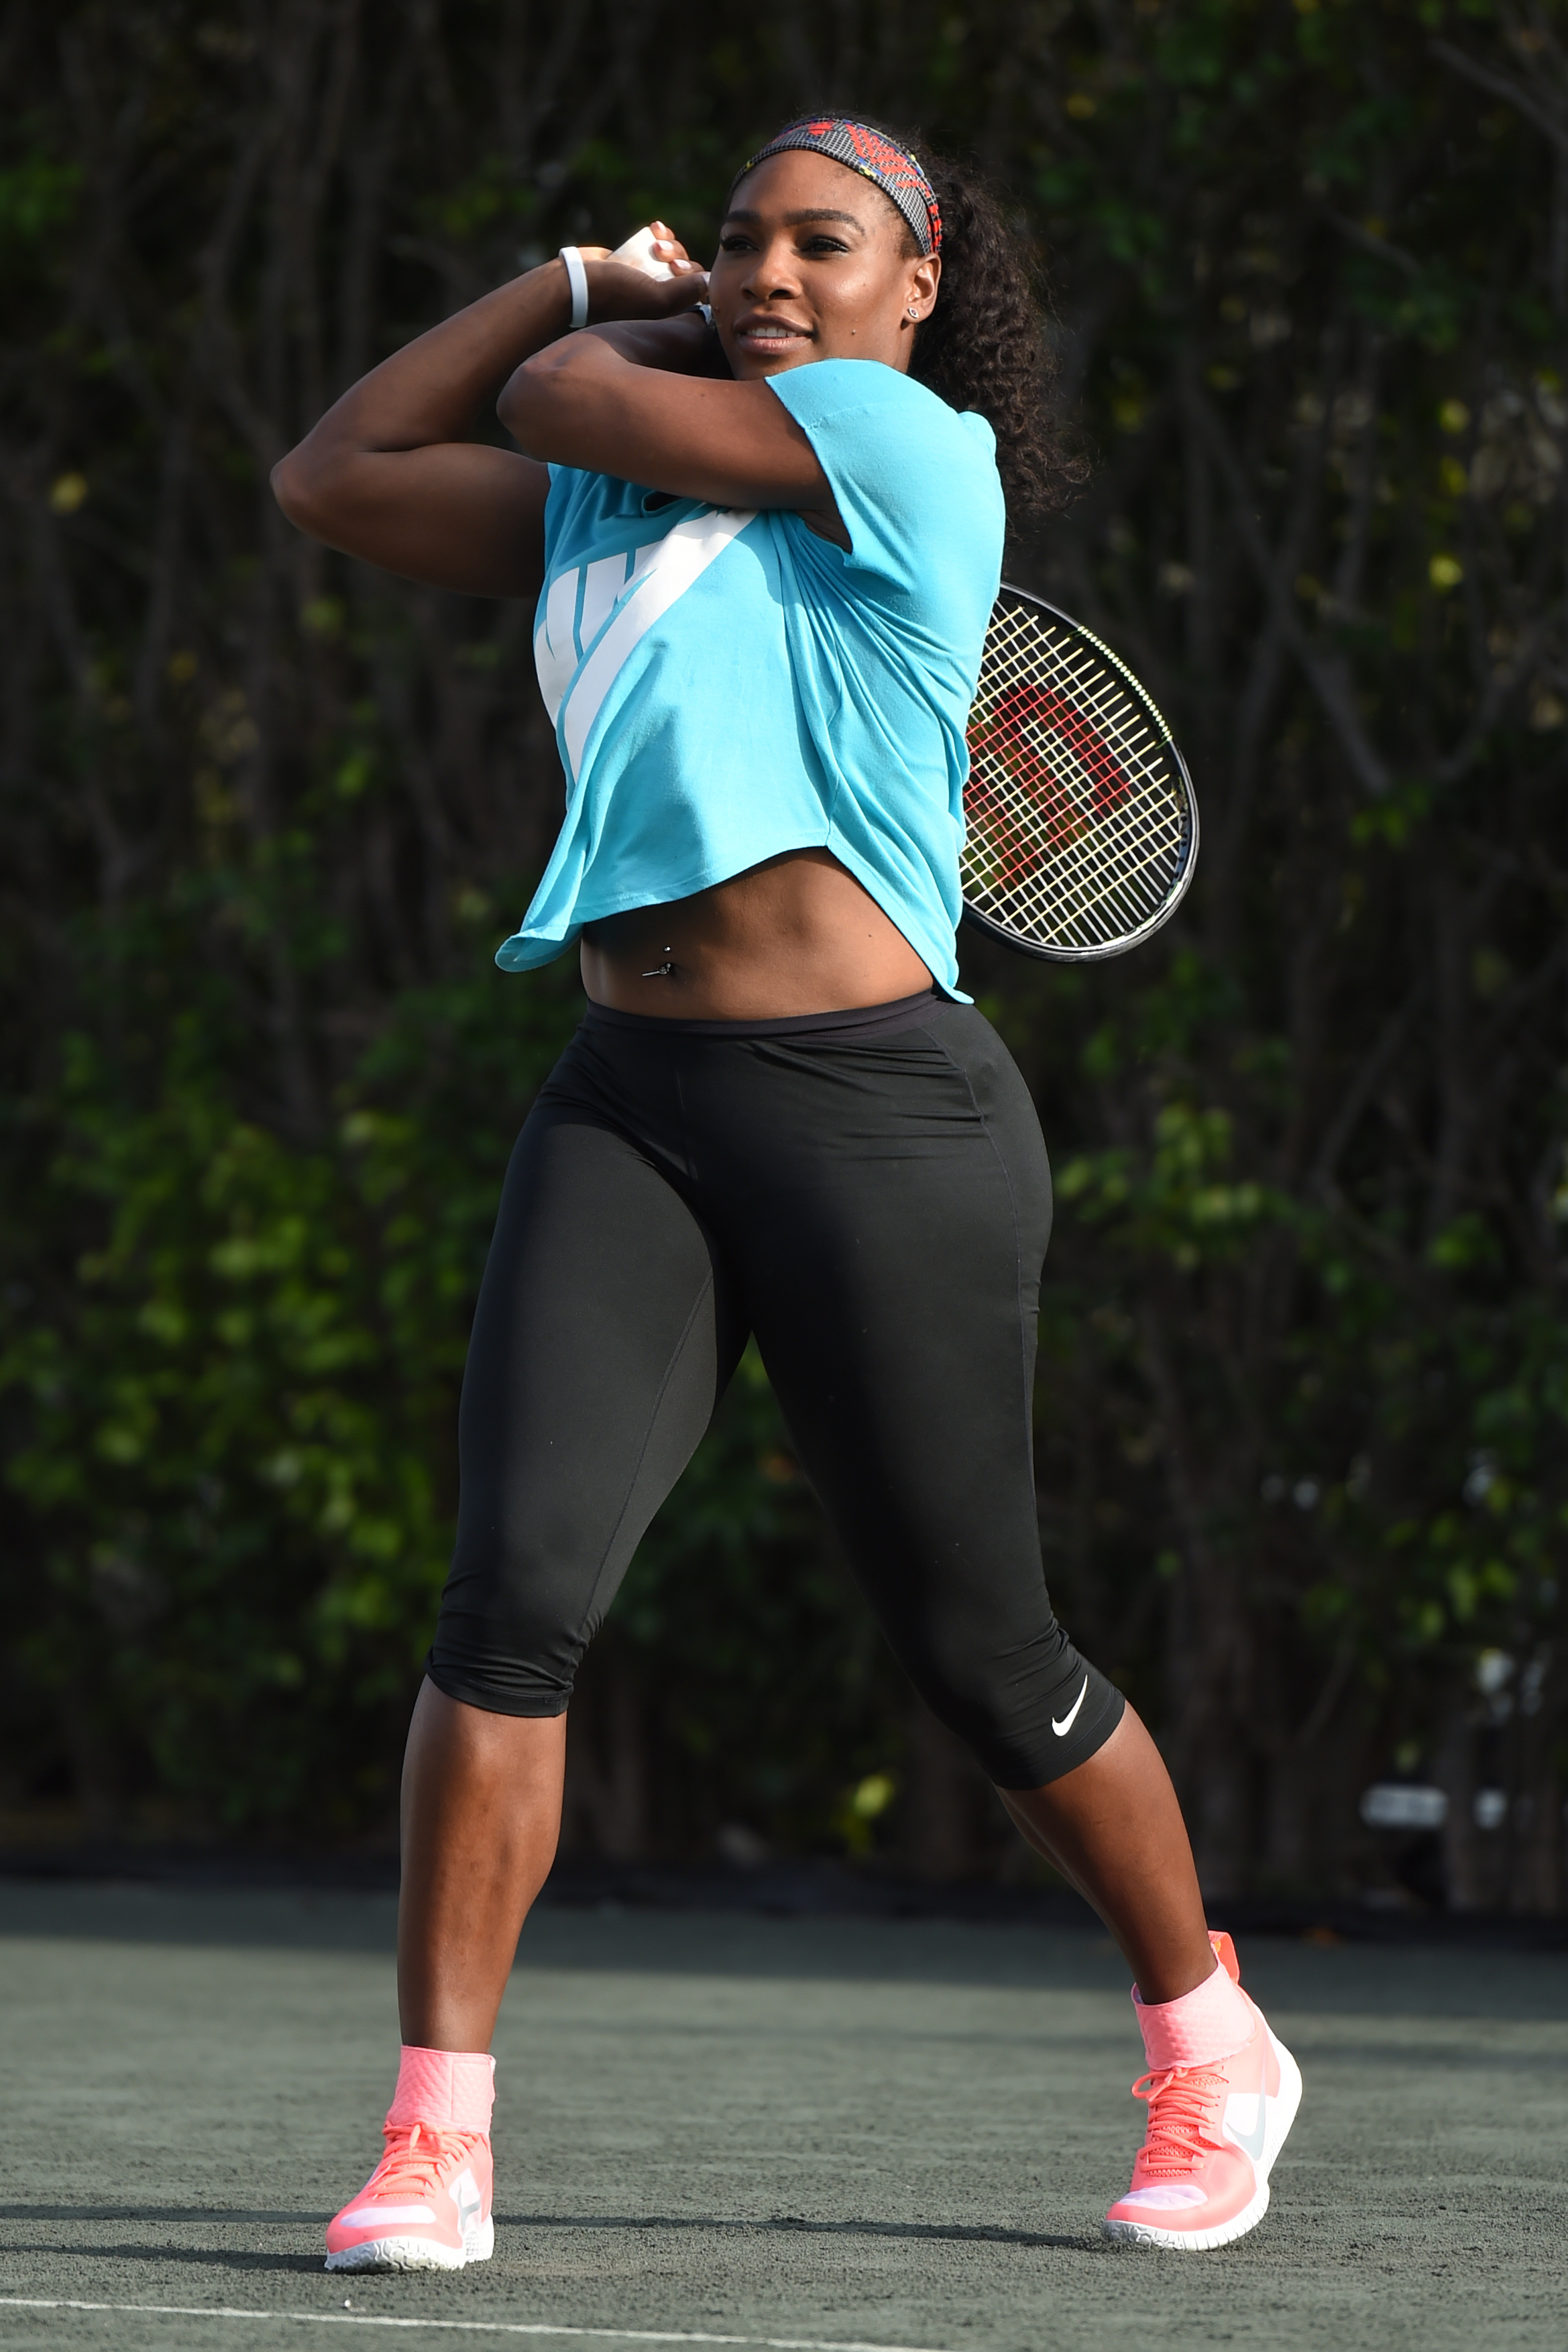 Serena williams dancing to beyonc 233 s quot 7 11 quot is the greatest thing you